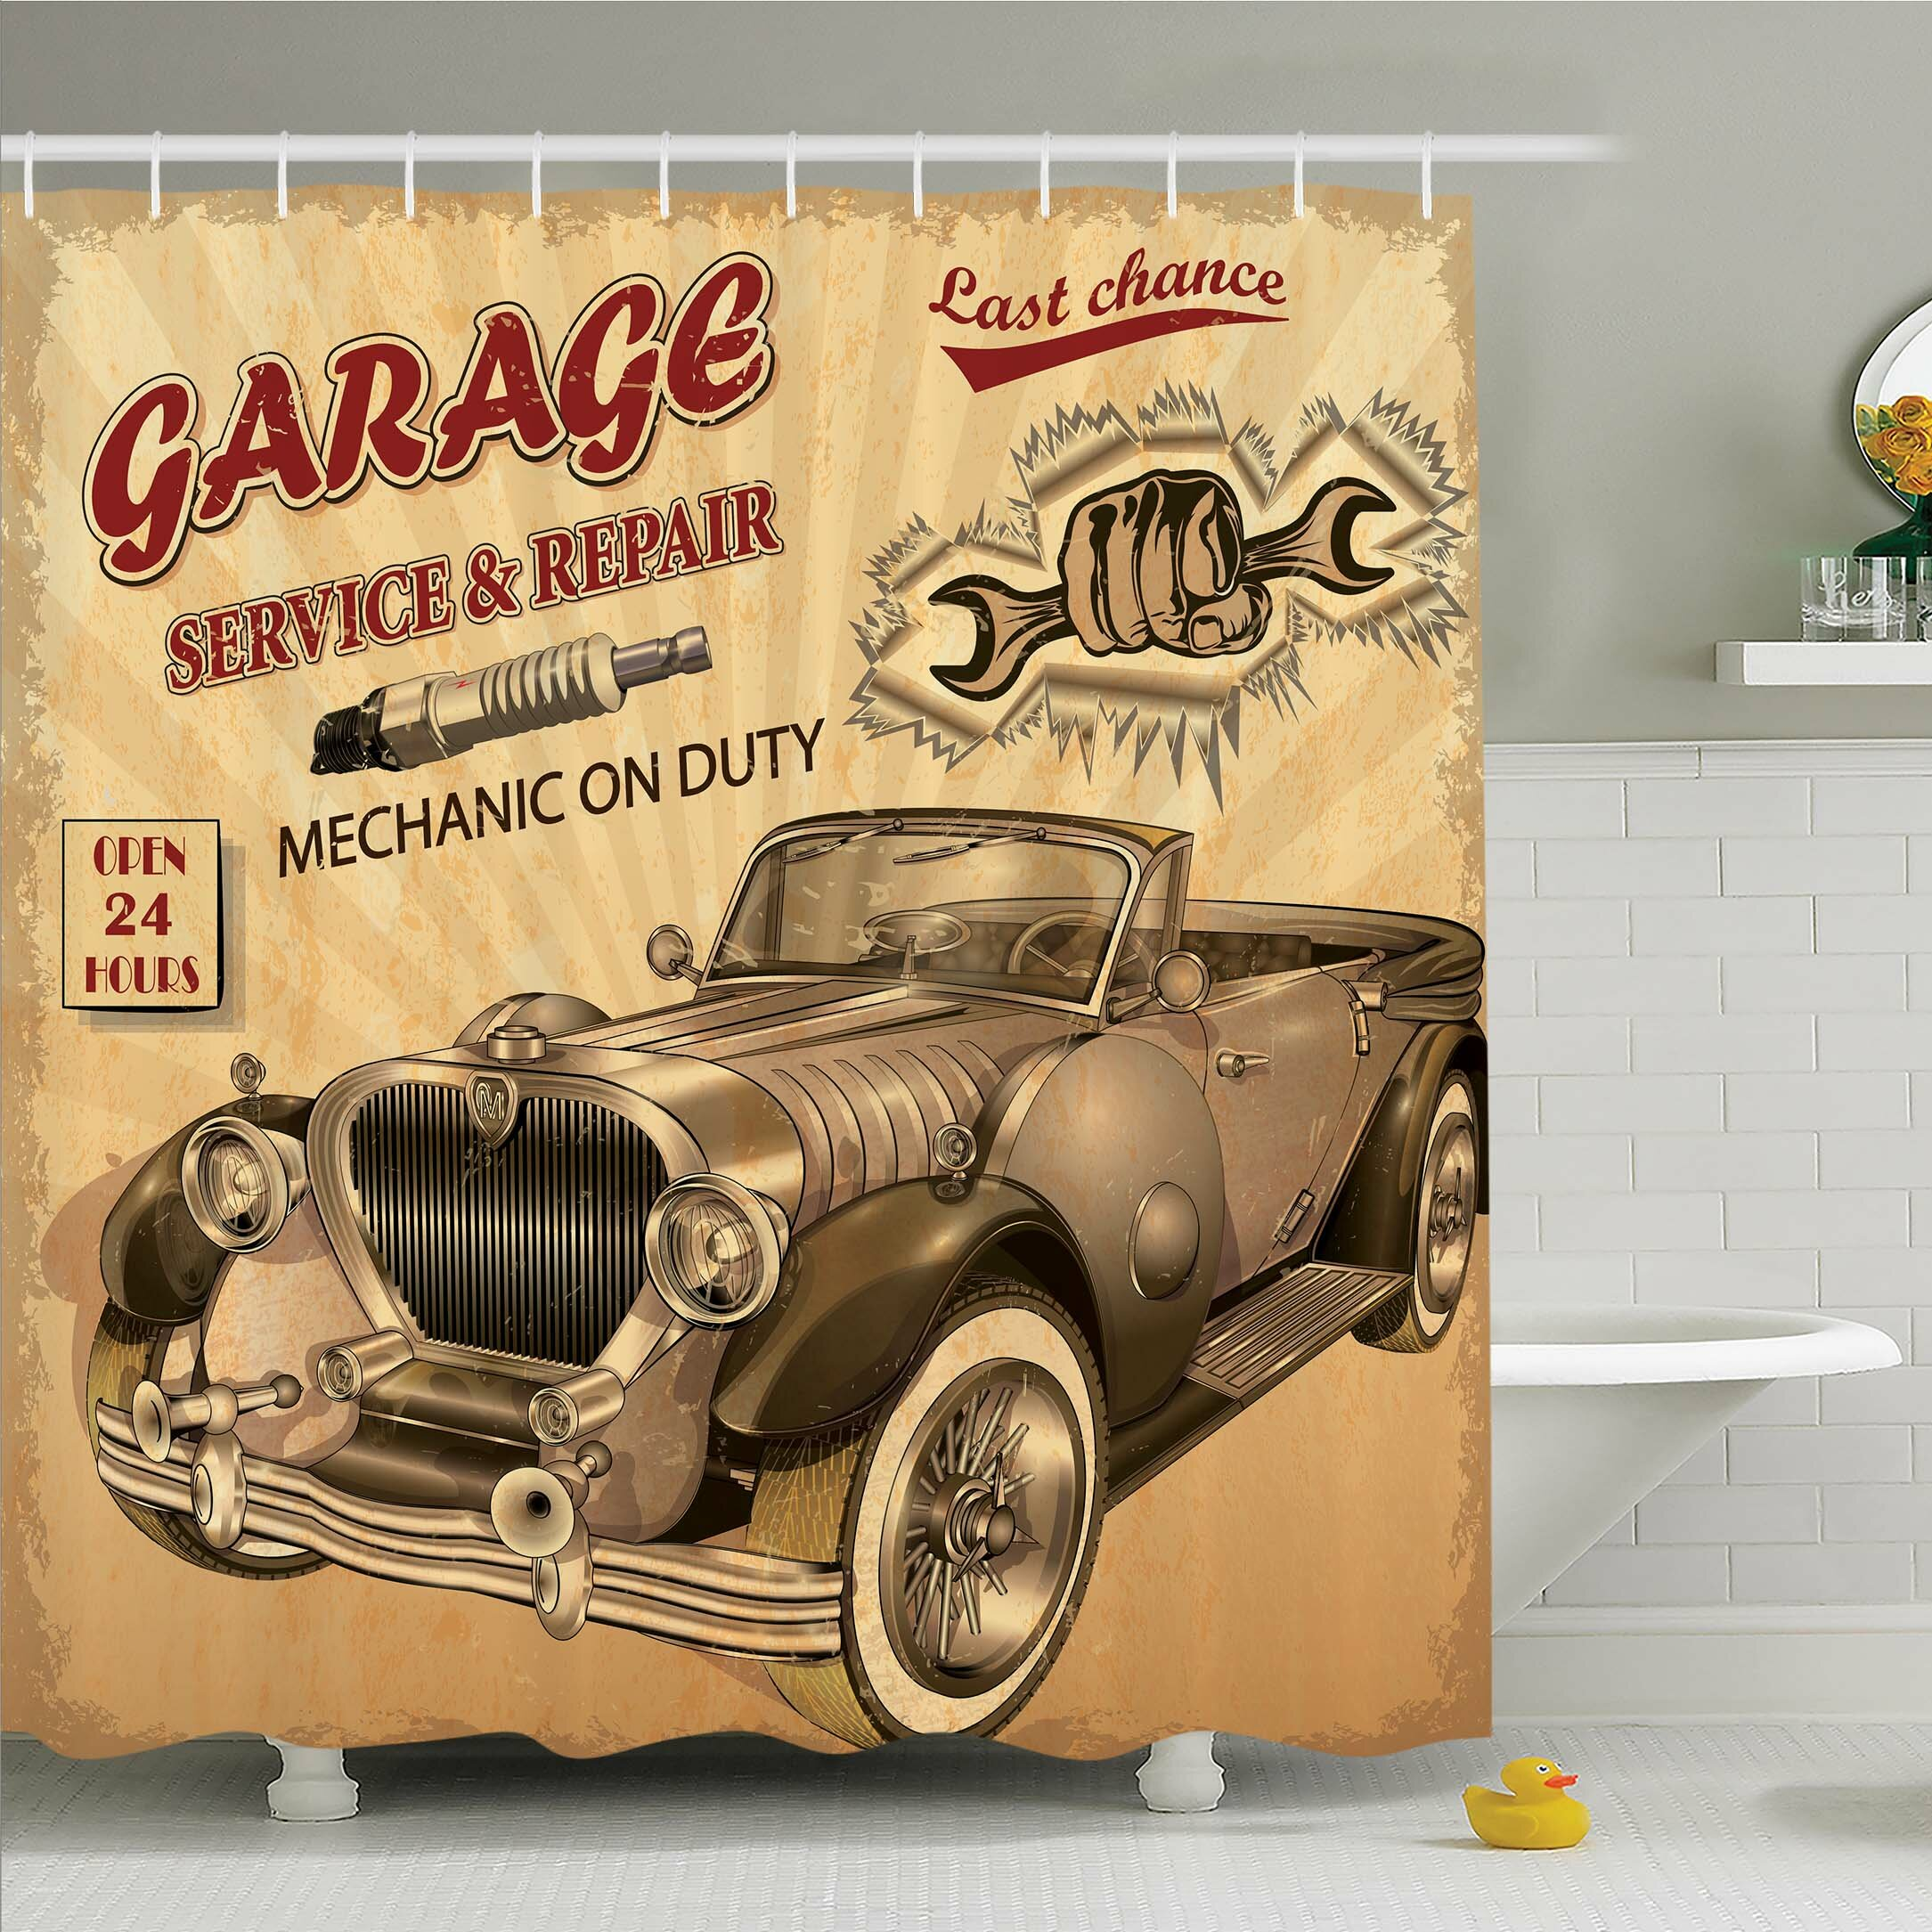 Ambesonne Vintage Nostalgic Car Figure With Garage Service And Repair Store Phrase Dated Faded Shower Curtain Set